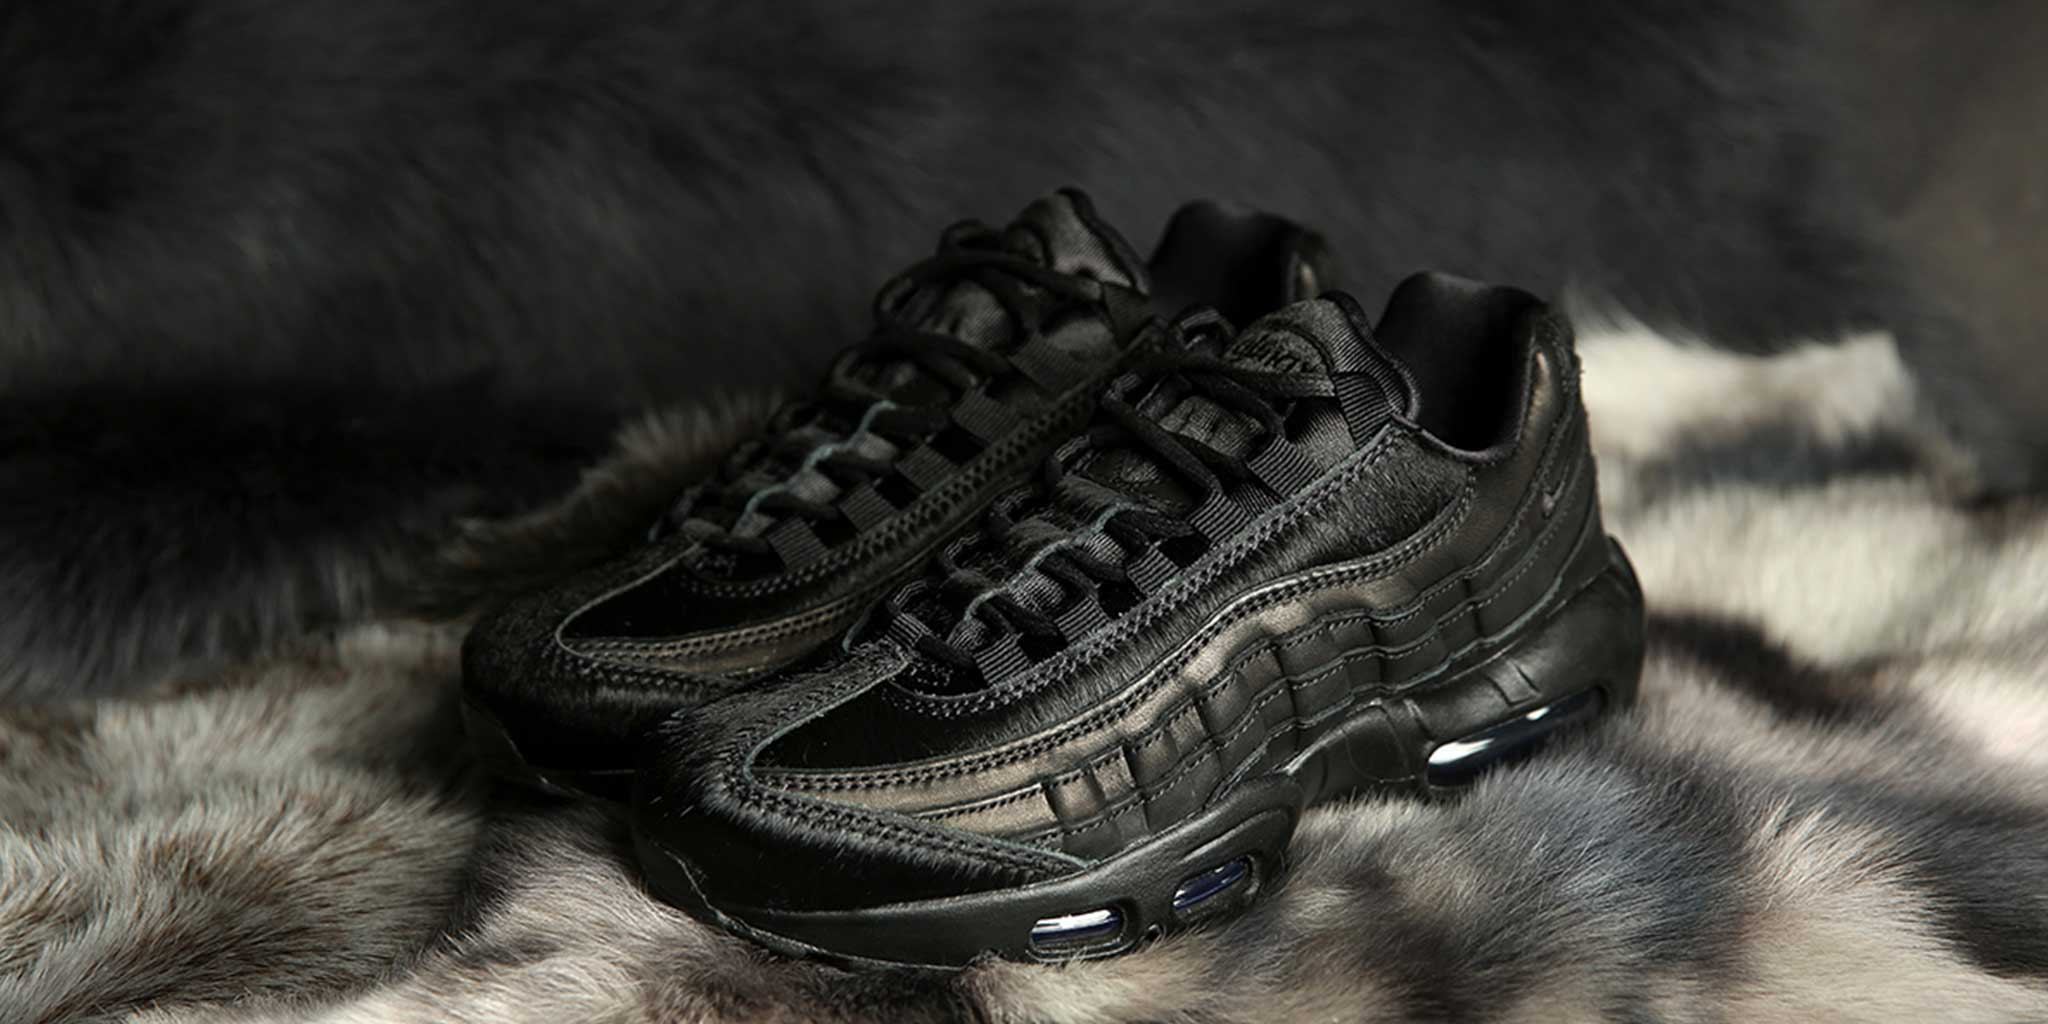 release  nike premium black pony hair pack now available – Pam Pam b8778aa0c372